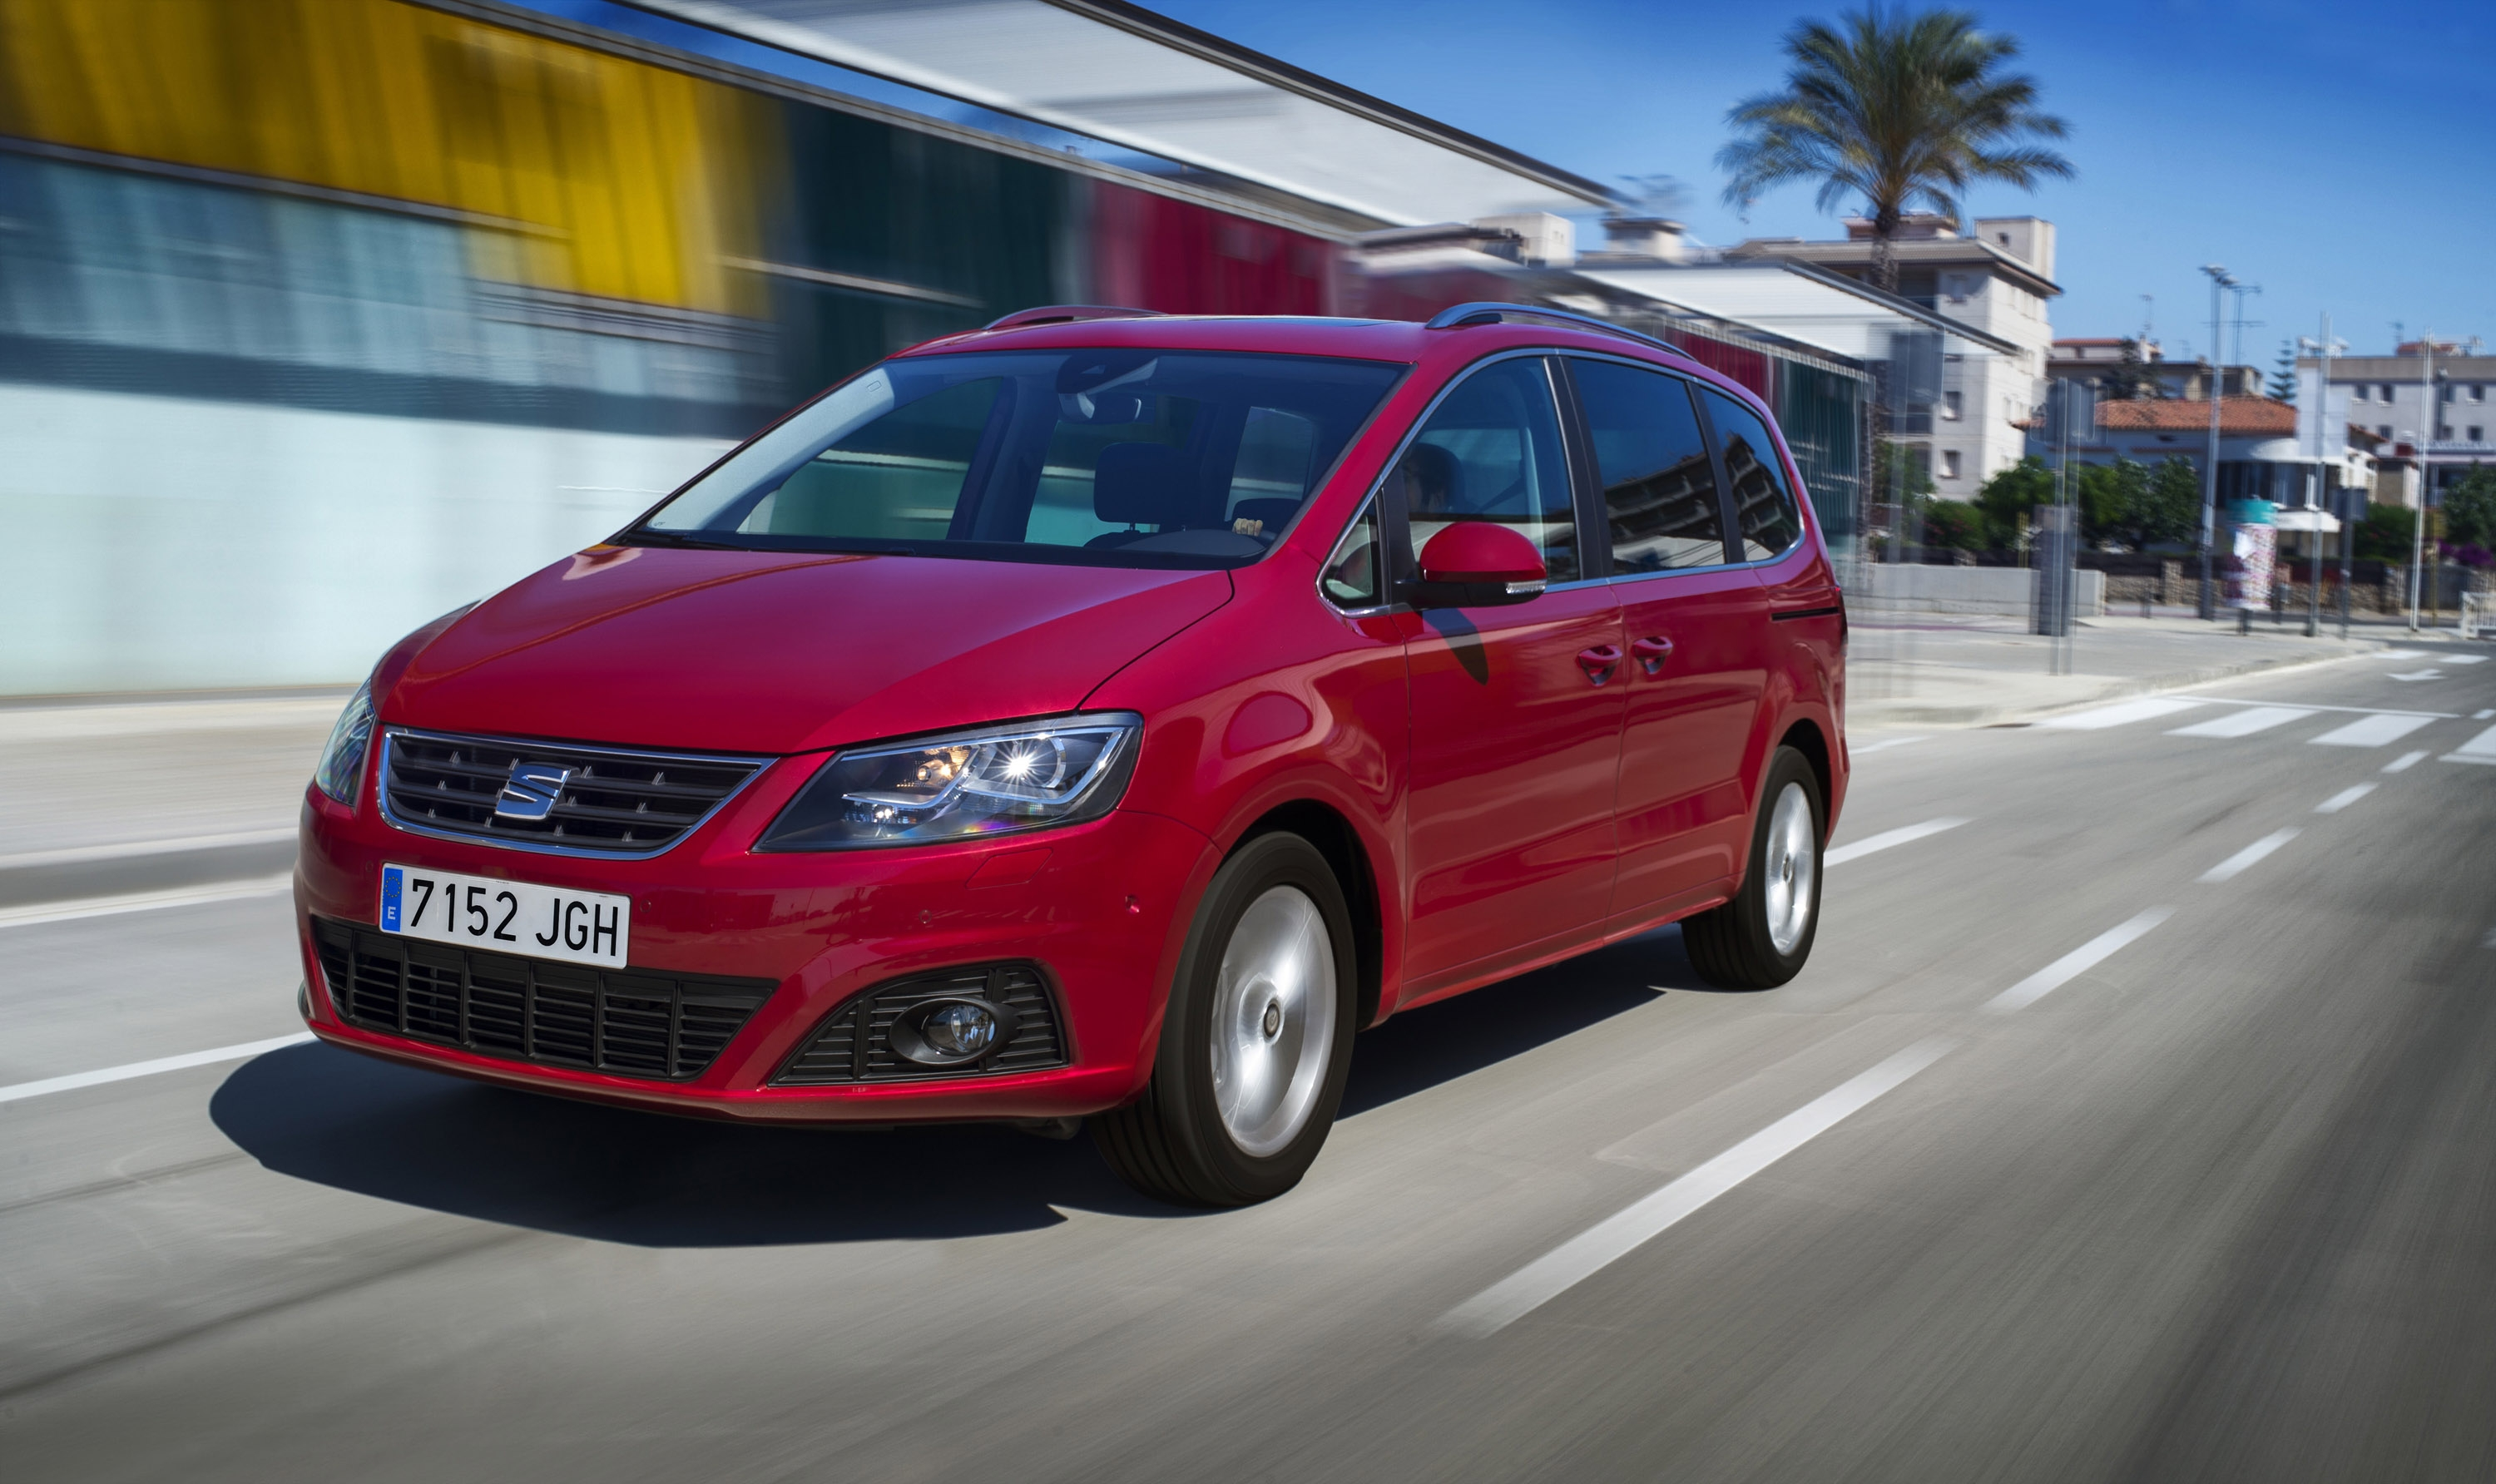 2016 Seat Alhambra thumbnail photo 92690